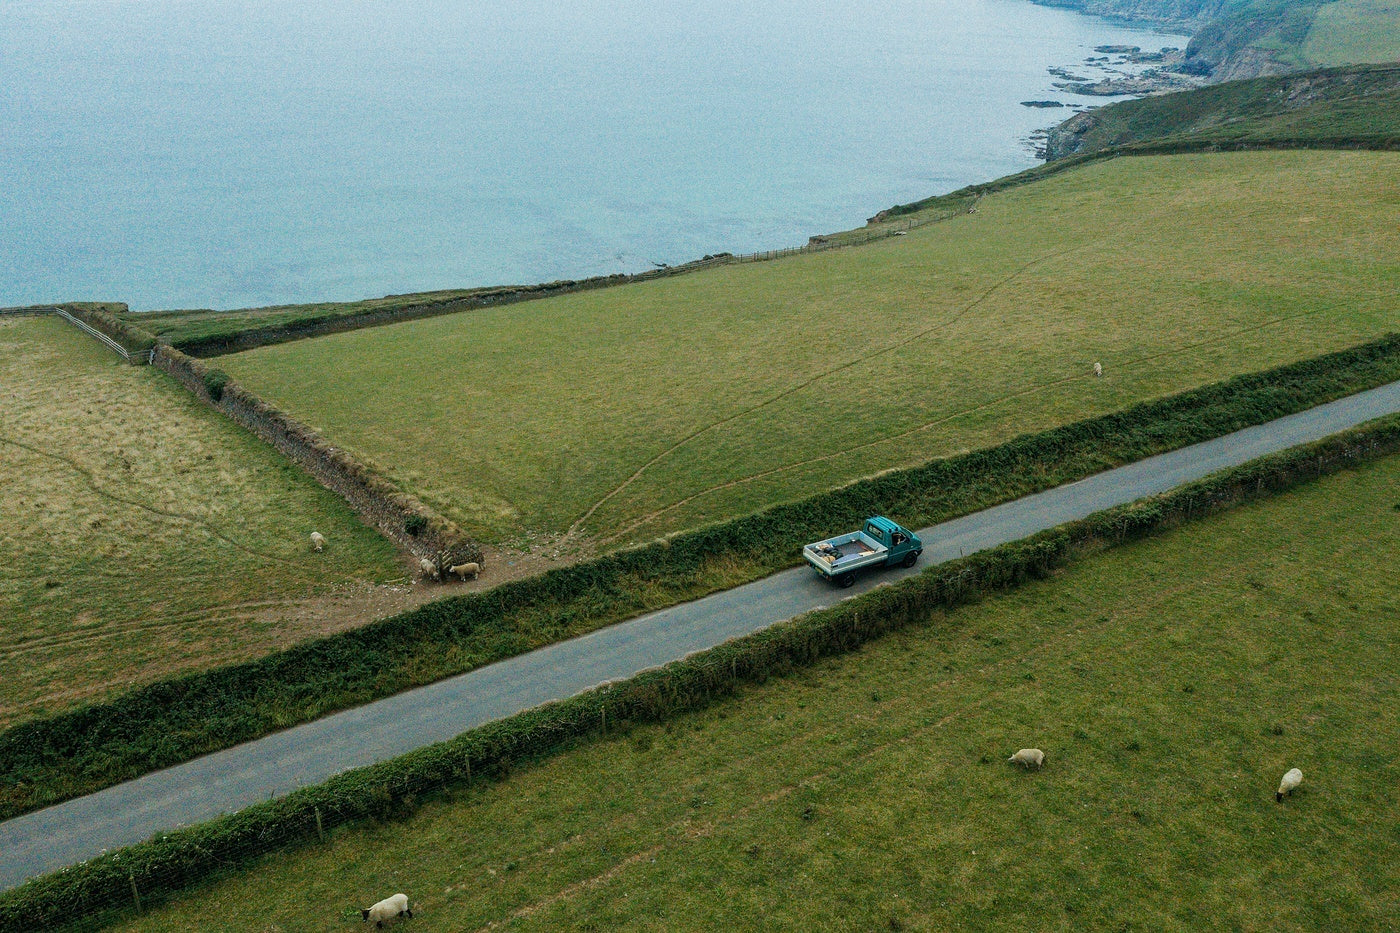 Our adventure van driving on the winding road above the sea.